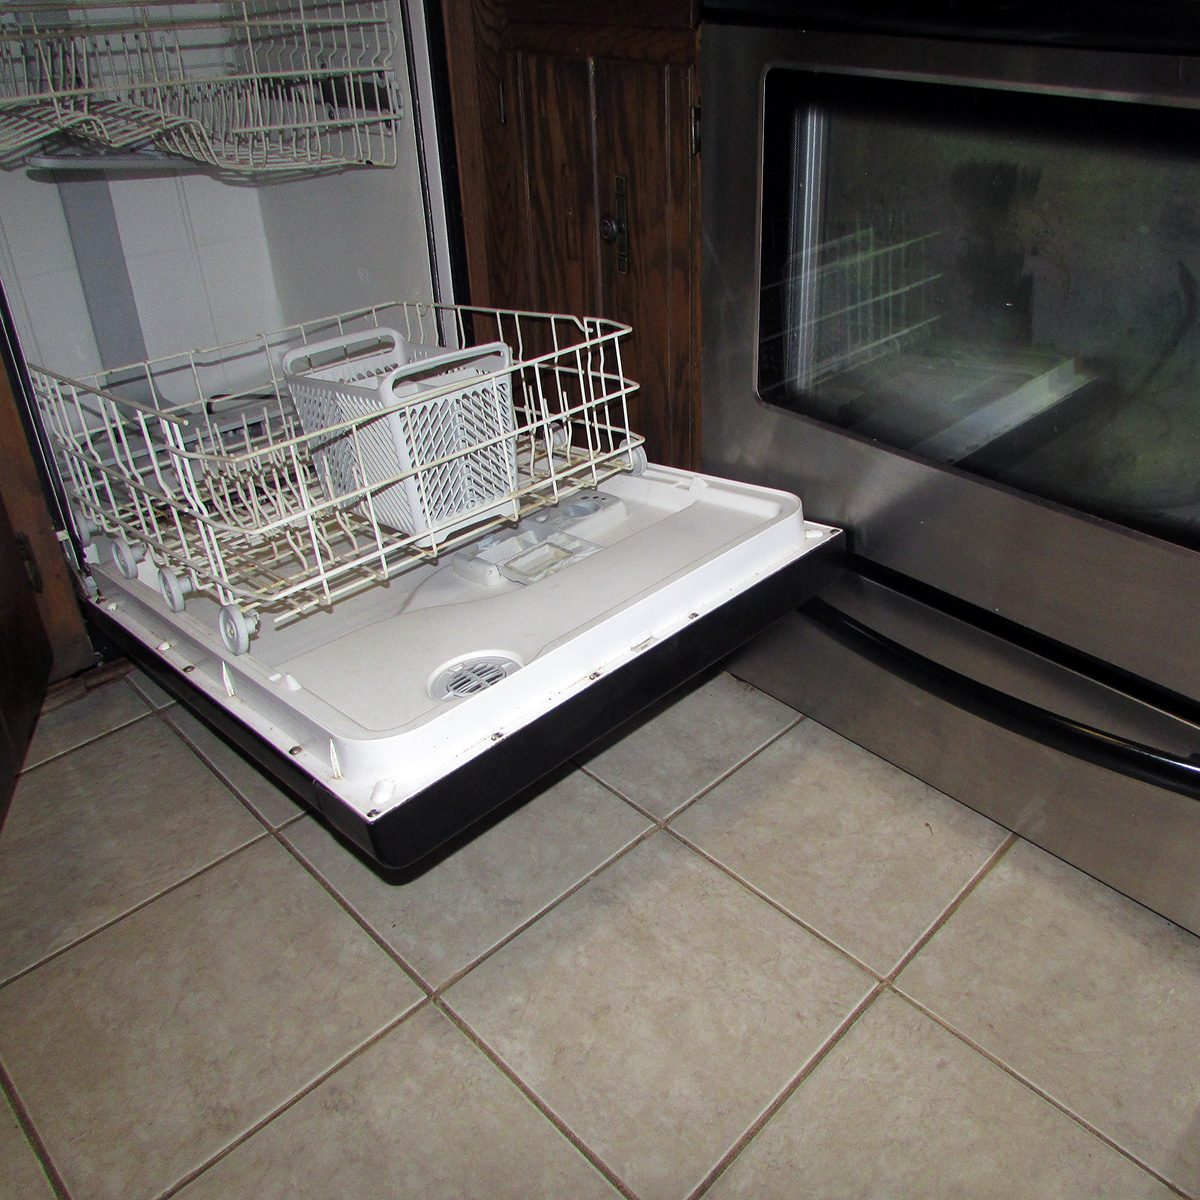 A dishwasher opened and blocking an oven   Construction Pro Tips